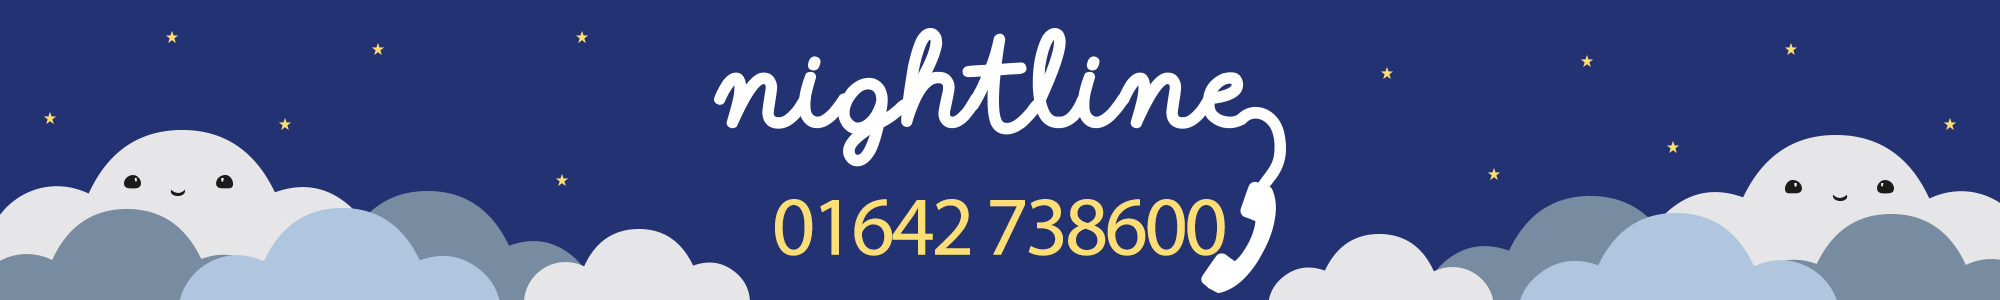 Nightline banner with phone number